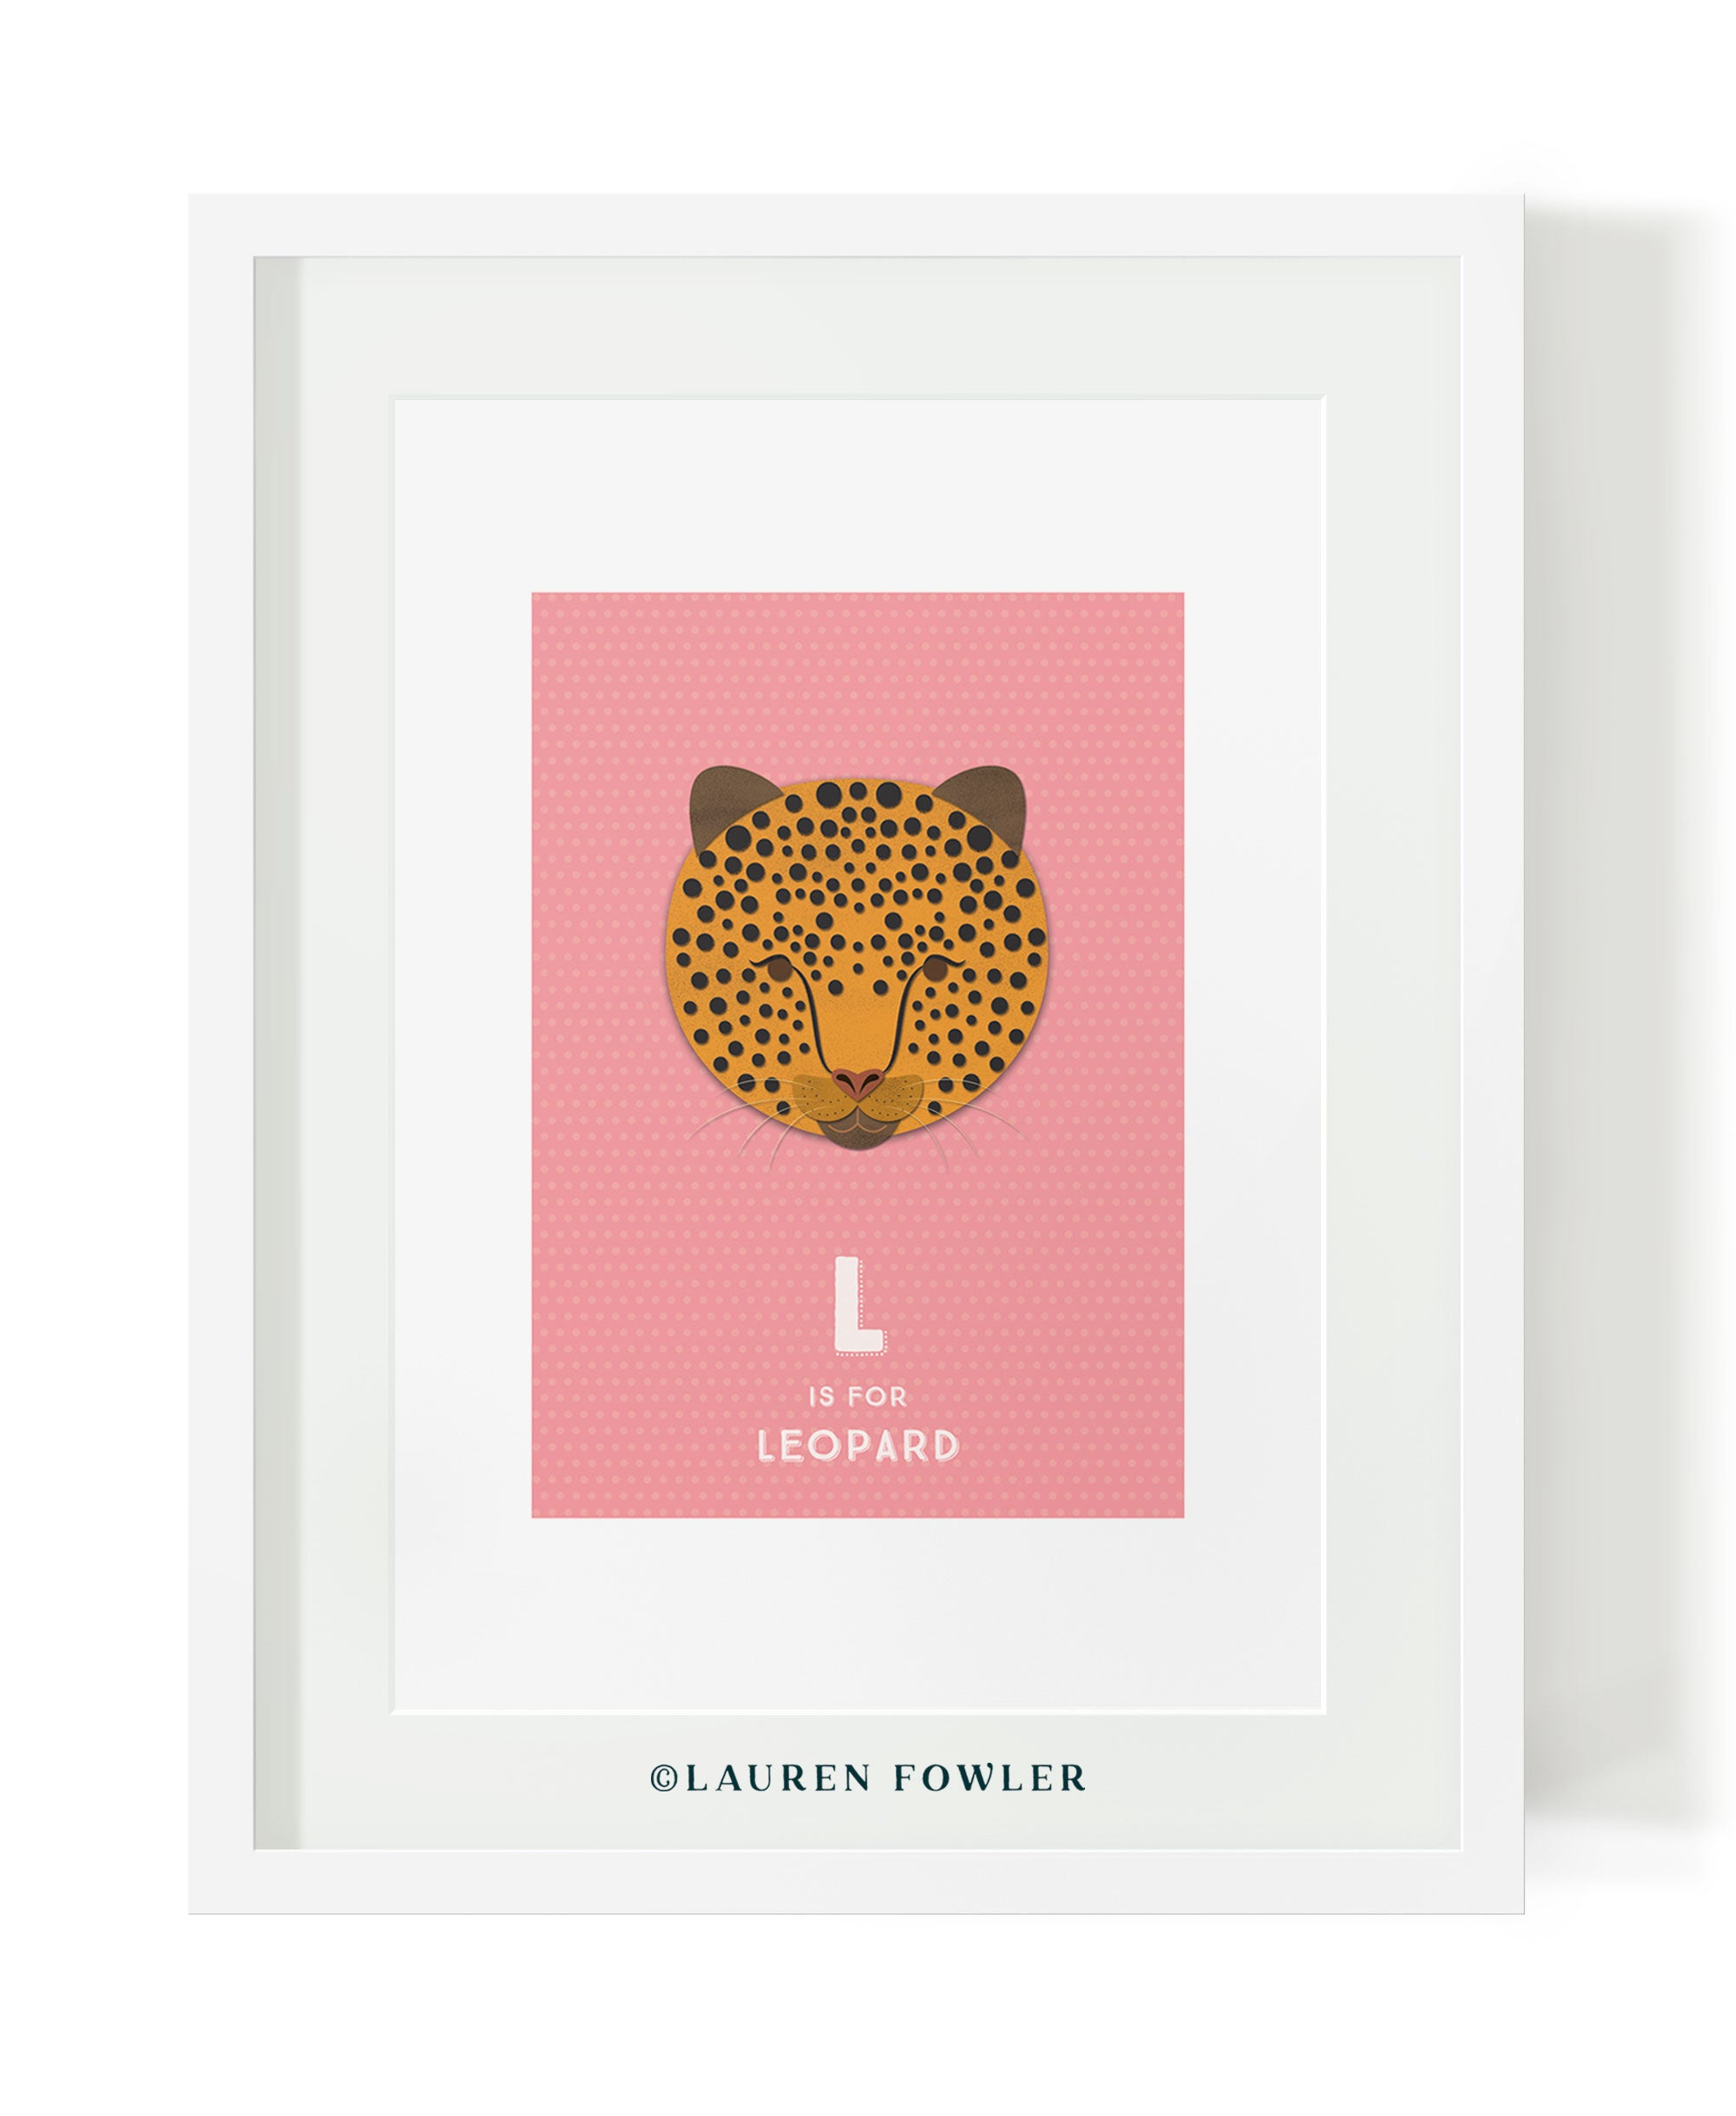 South African Big Five Leopard illustrated artwork by Lauren Fowler